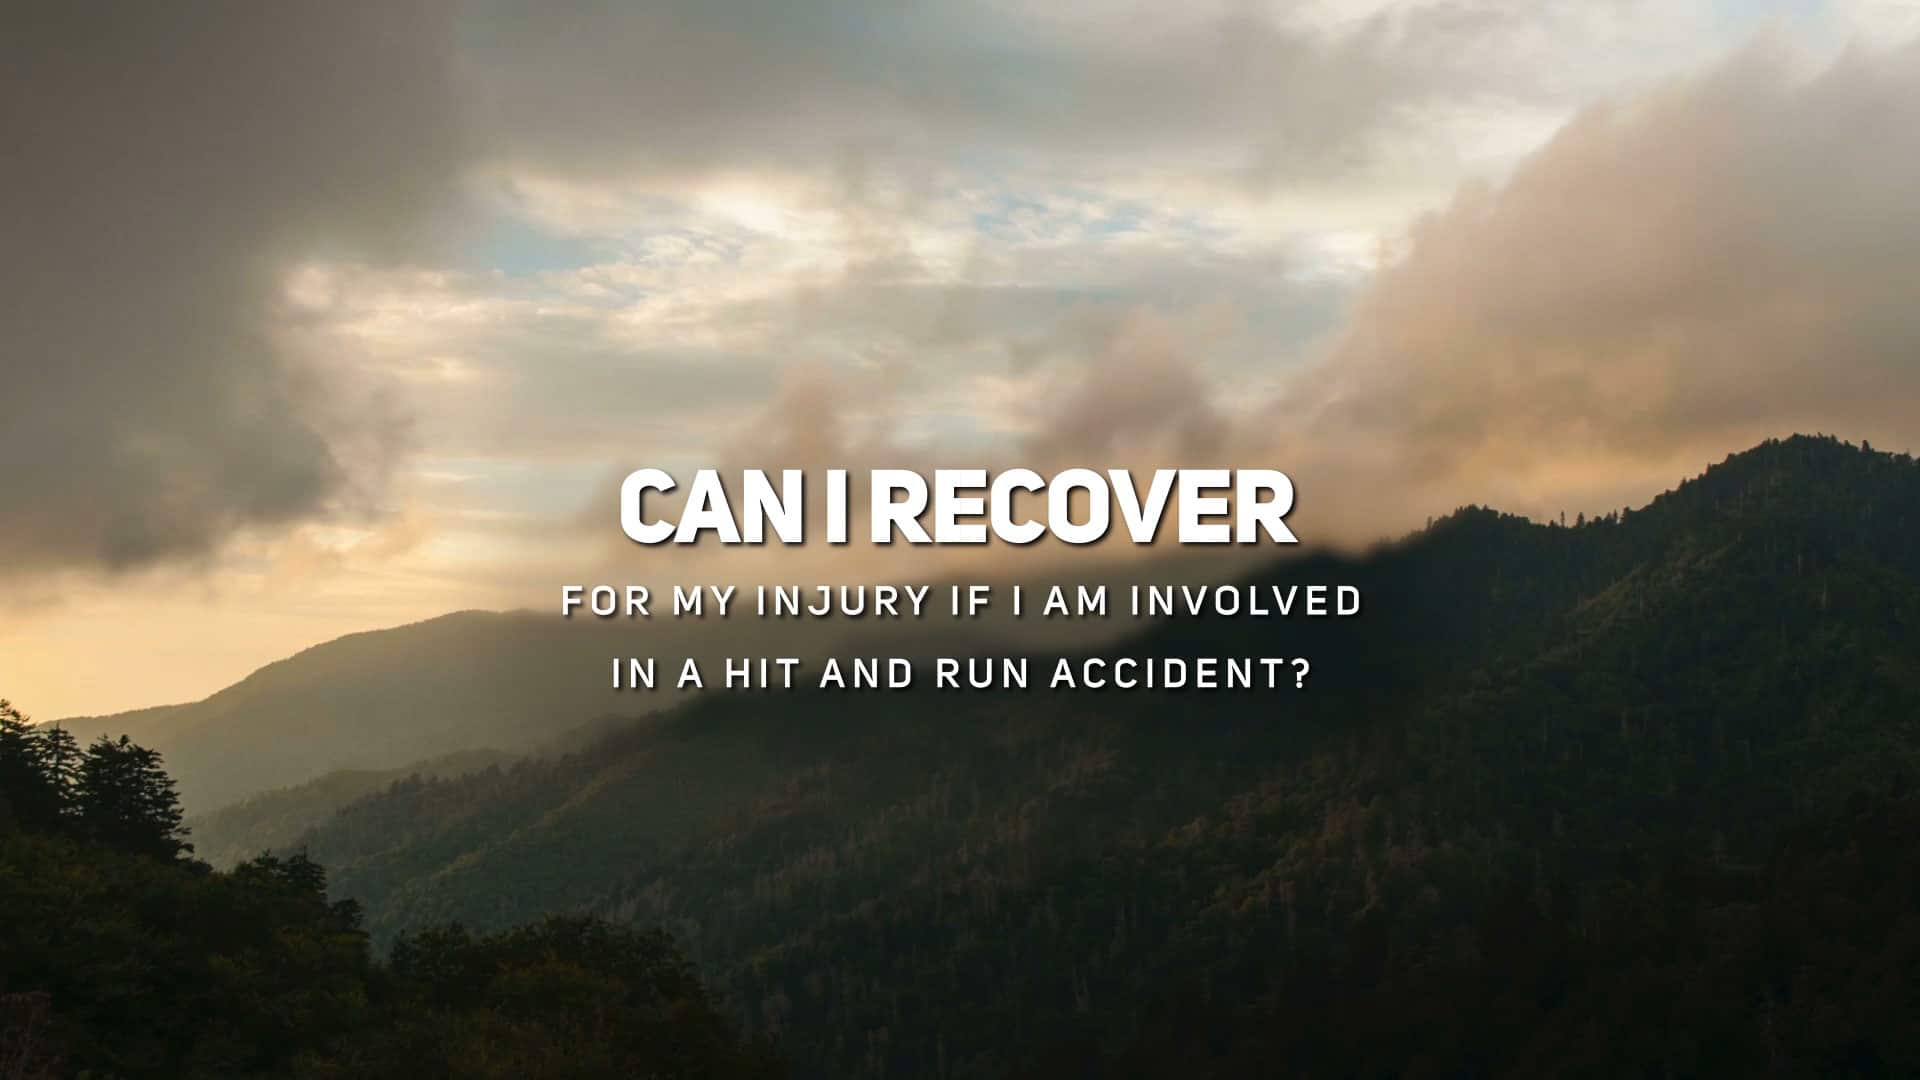 Can I Recover For My Injury If I Am Involved in a Hit and Run Accident